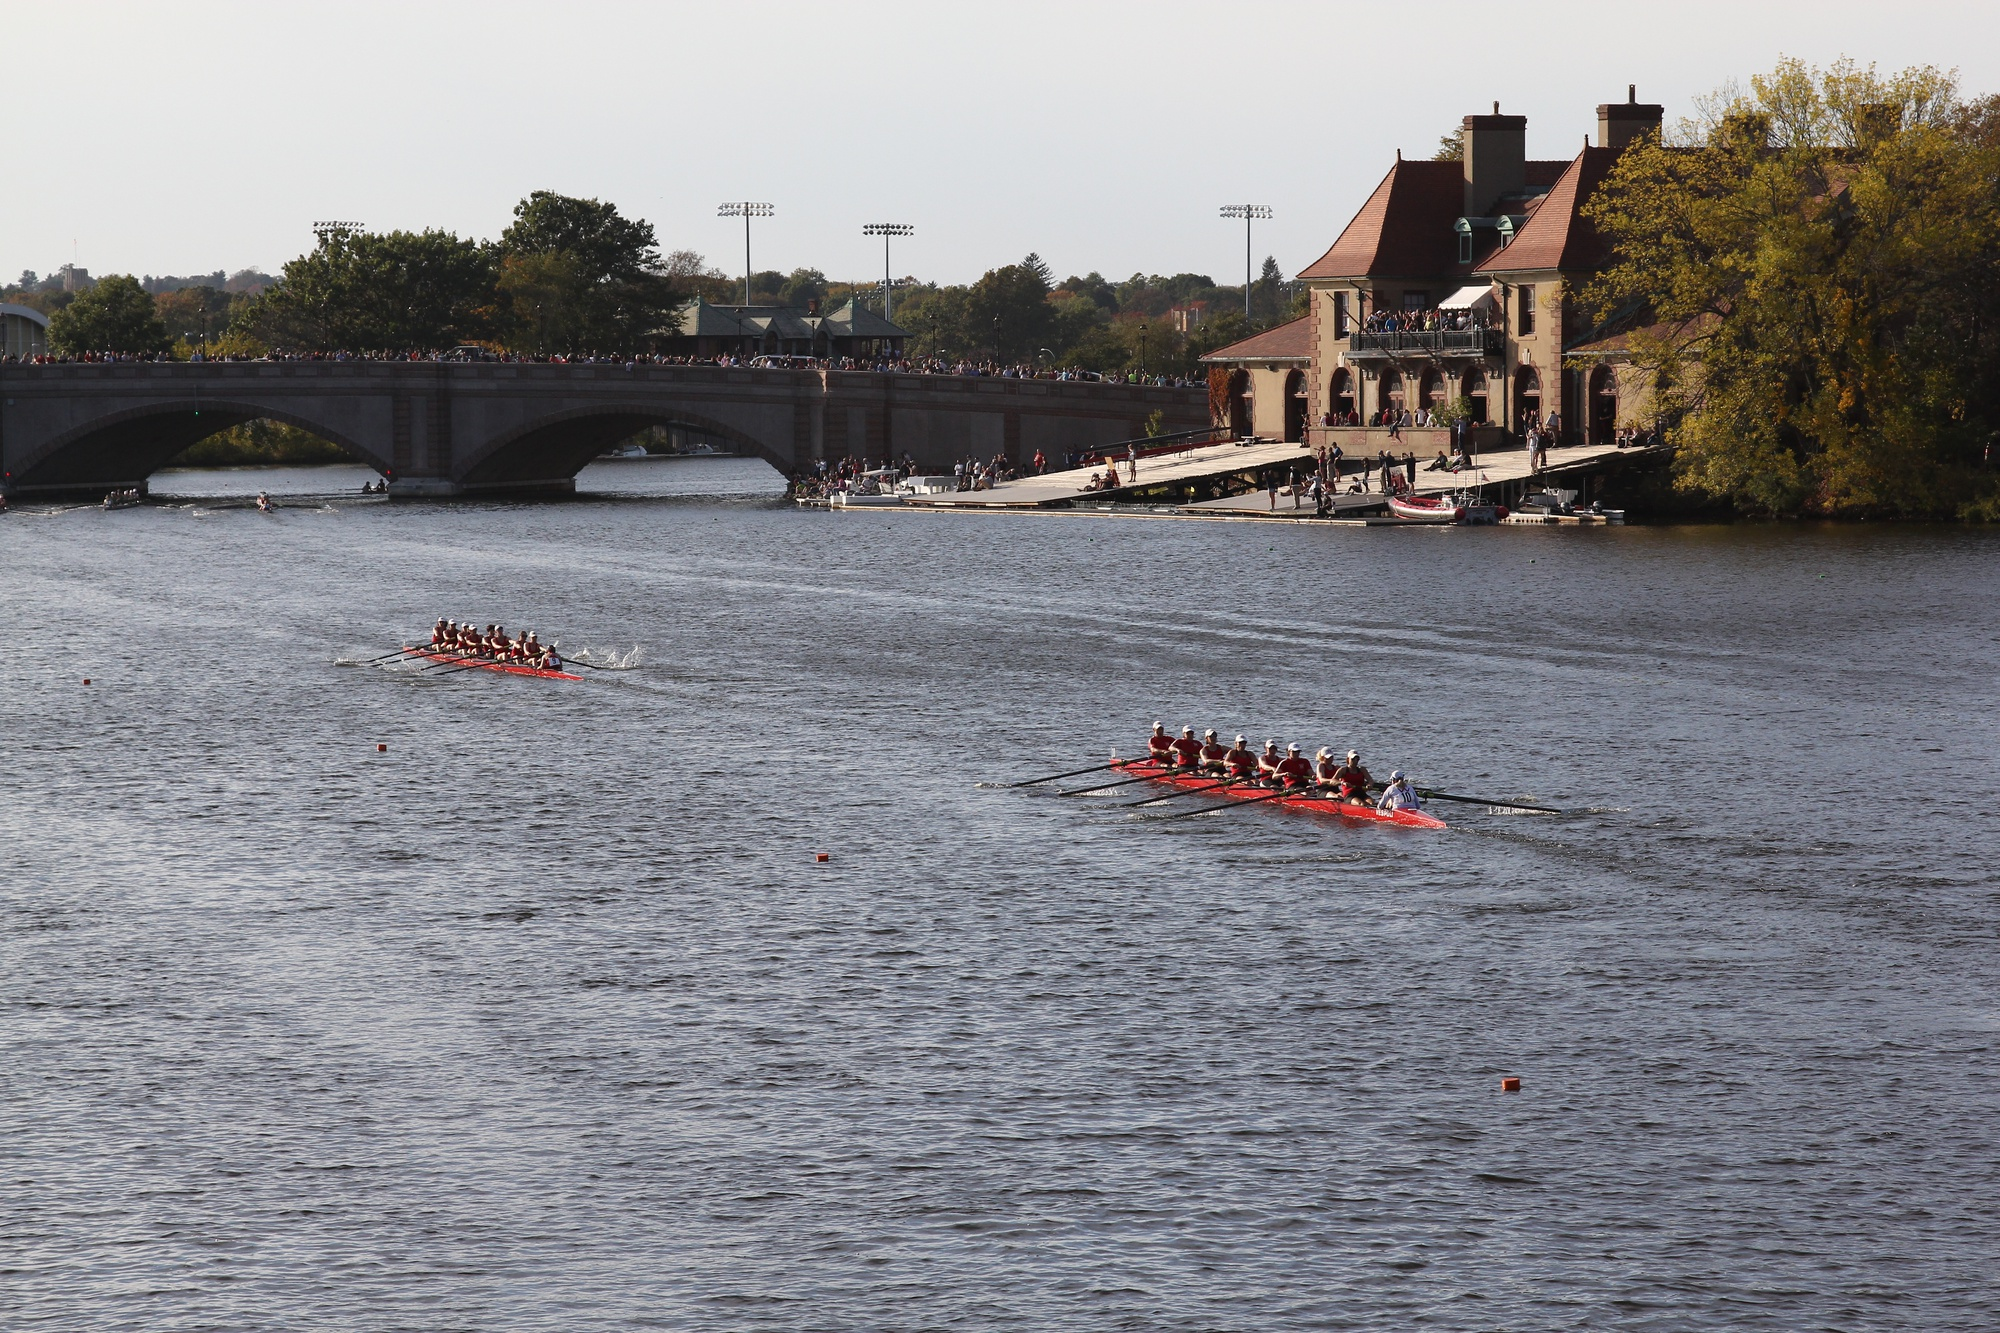 Both of Harvard's lightweight teams earned bronze medals in one of their races, the teams' best results of the weekend.